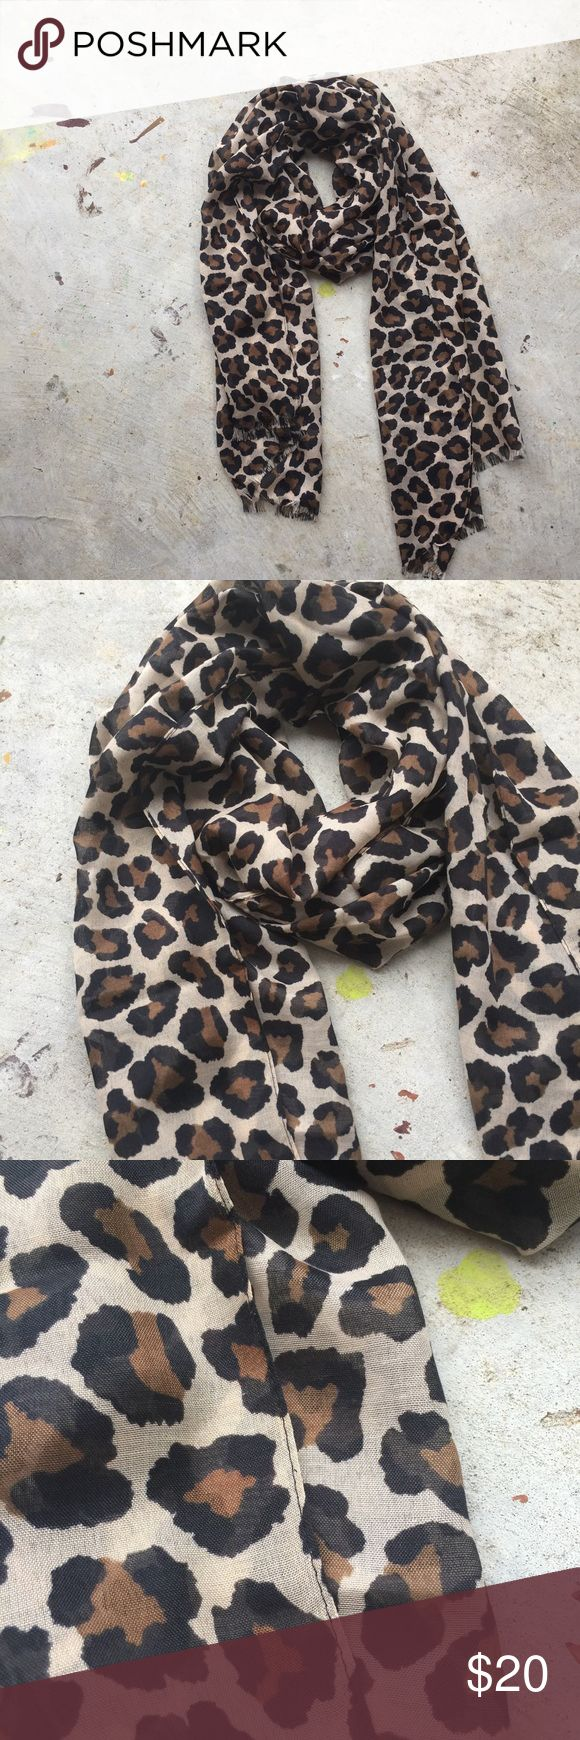 Animal Print Scarf Standard size. This would look fab with a black top and red heels or strappy sandals! RRB loves offers but is unable to trade at this time. ~{We are ALL beautiful.}~ NWOT. Bundle and save! Accessories Scarves & Wraps